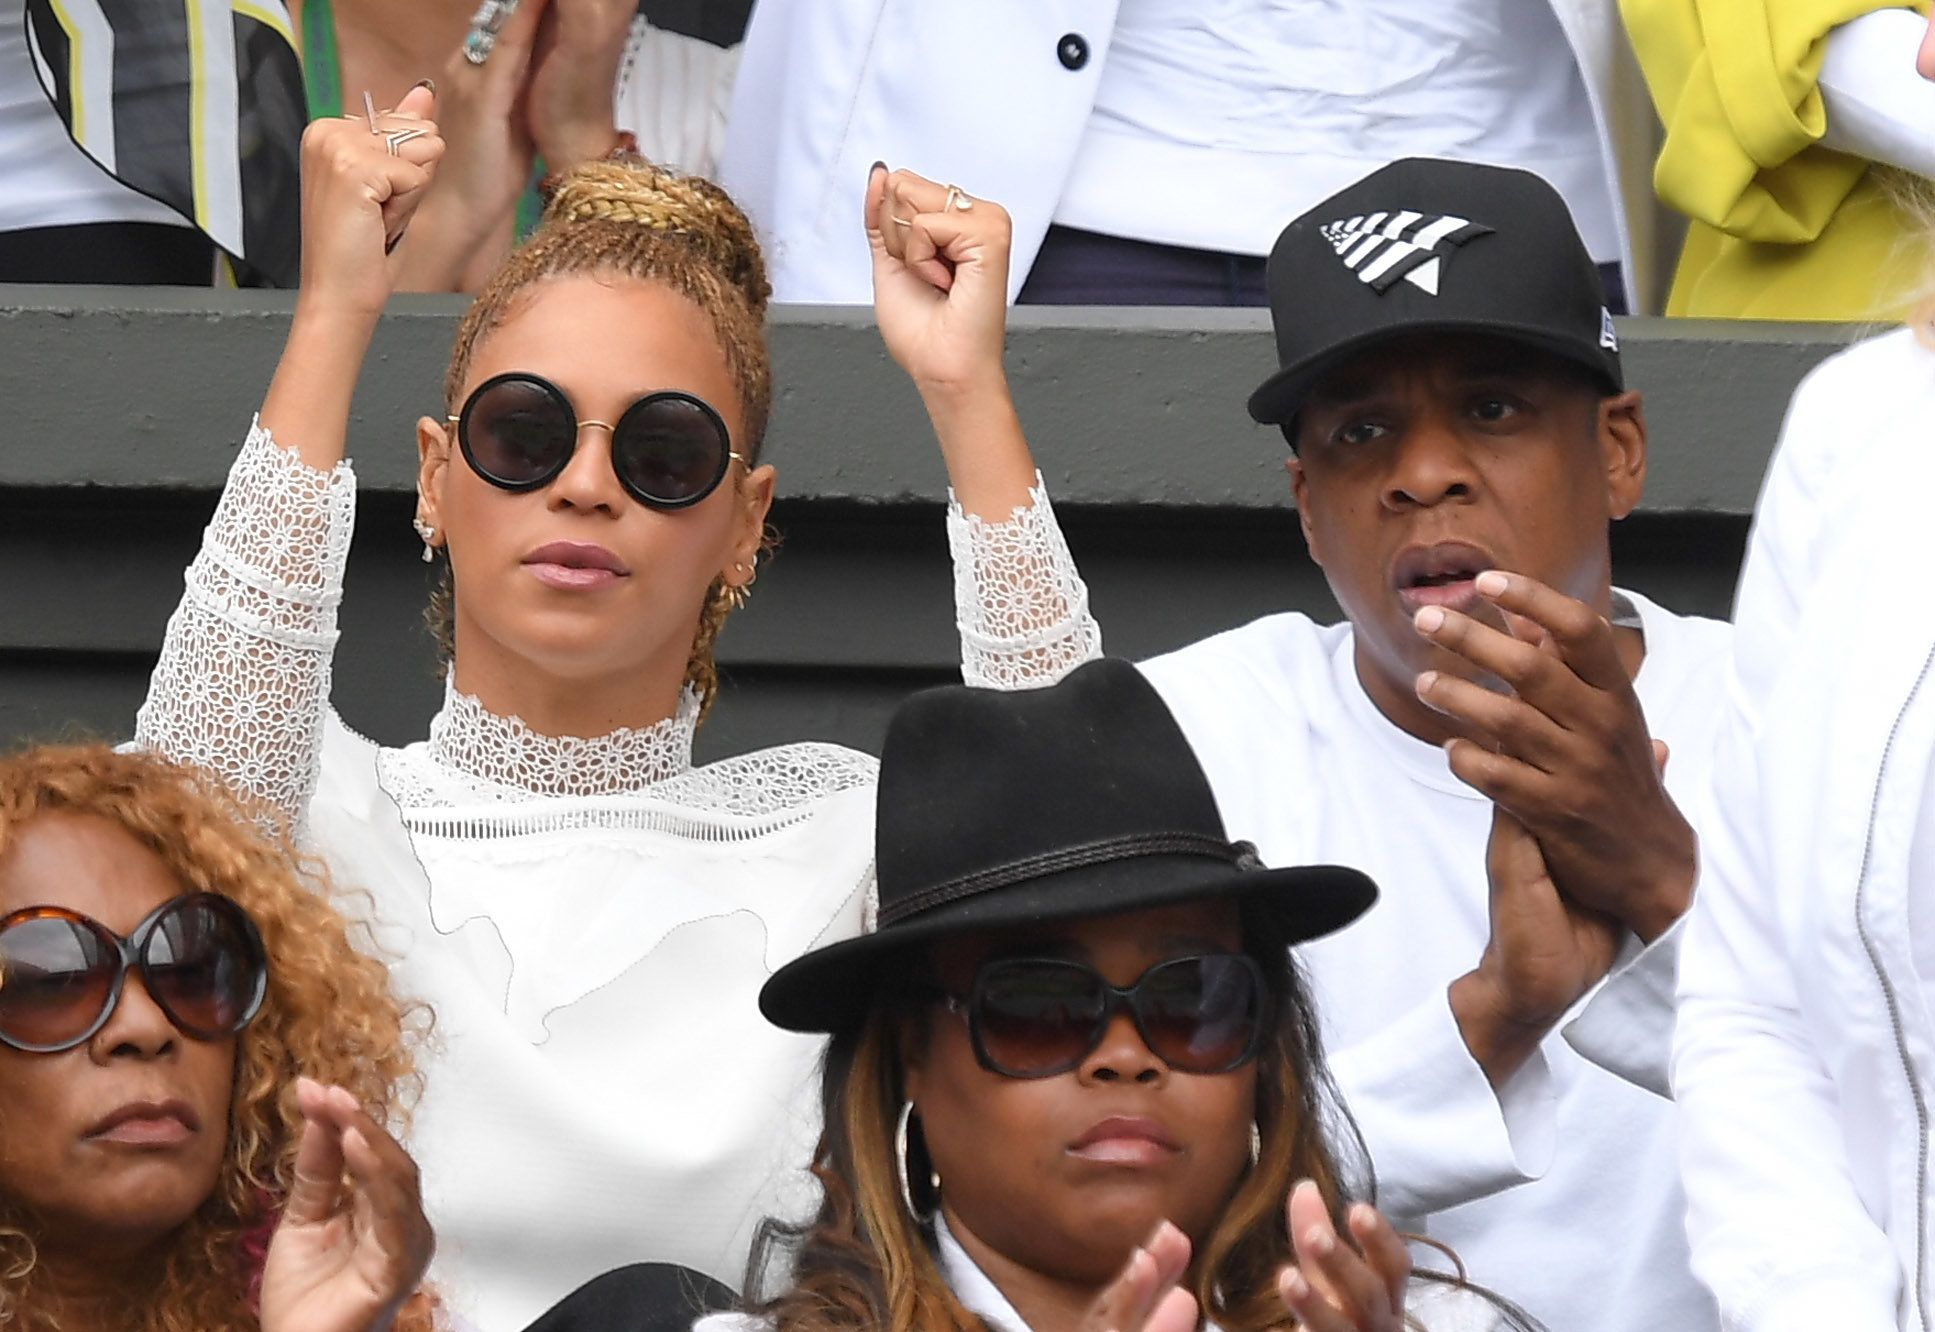 LONDON, ENGLAND - JULY 09:  Beyonce and Jay Z attend the women's final of the Wimbledon Tennis Championships between Serena Williams and Angelique Kerber at Wimbledon on July 09, 2016 in London, England.  (Photo by Karwai Tang/WireImage)